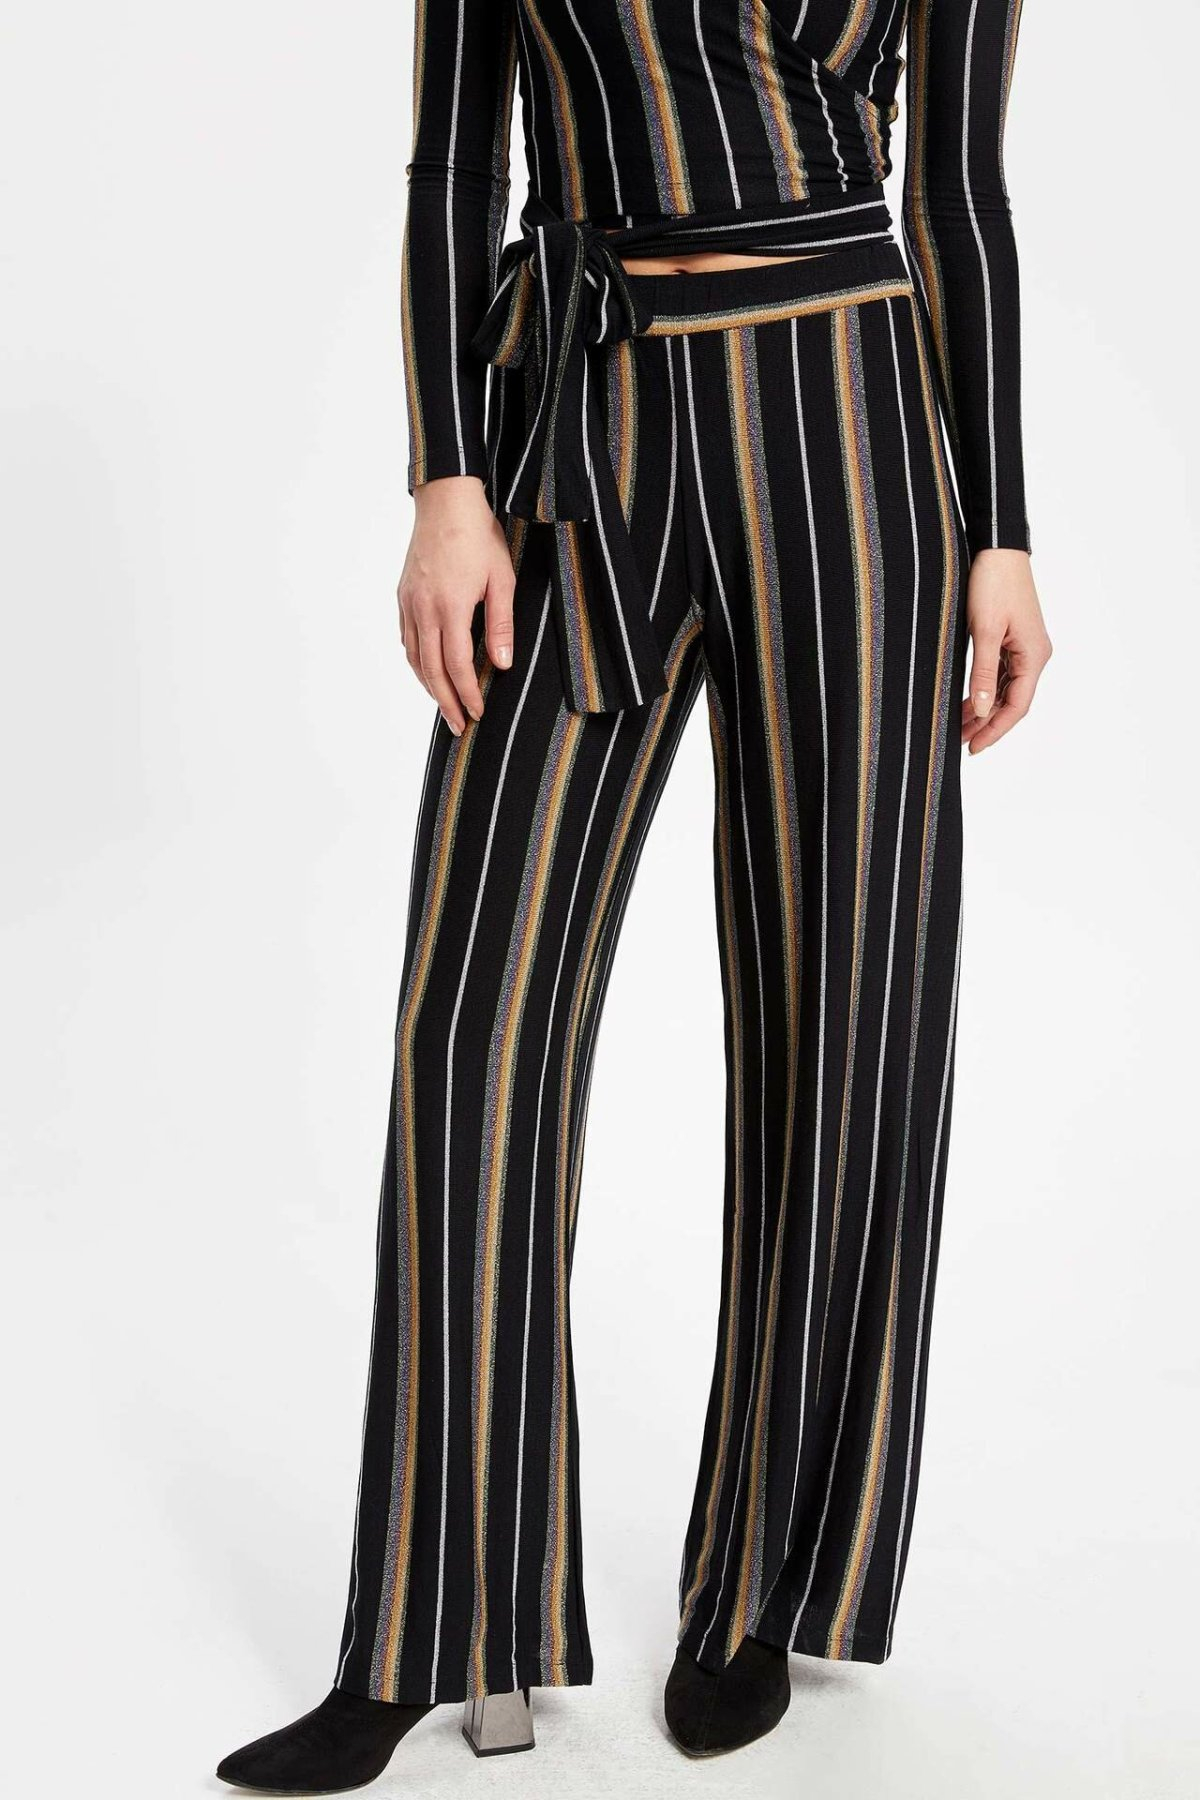 DeFacto Woman Casual Striped Long Pants Women Wide-leg Black Loose Pants Female Straight Bottoms Trousers-K9259AZ18CW